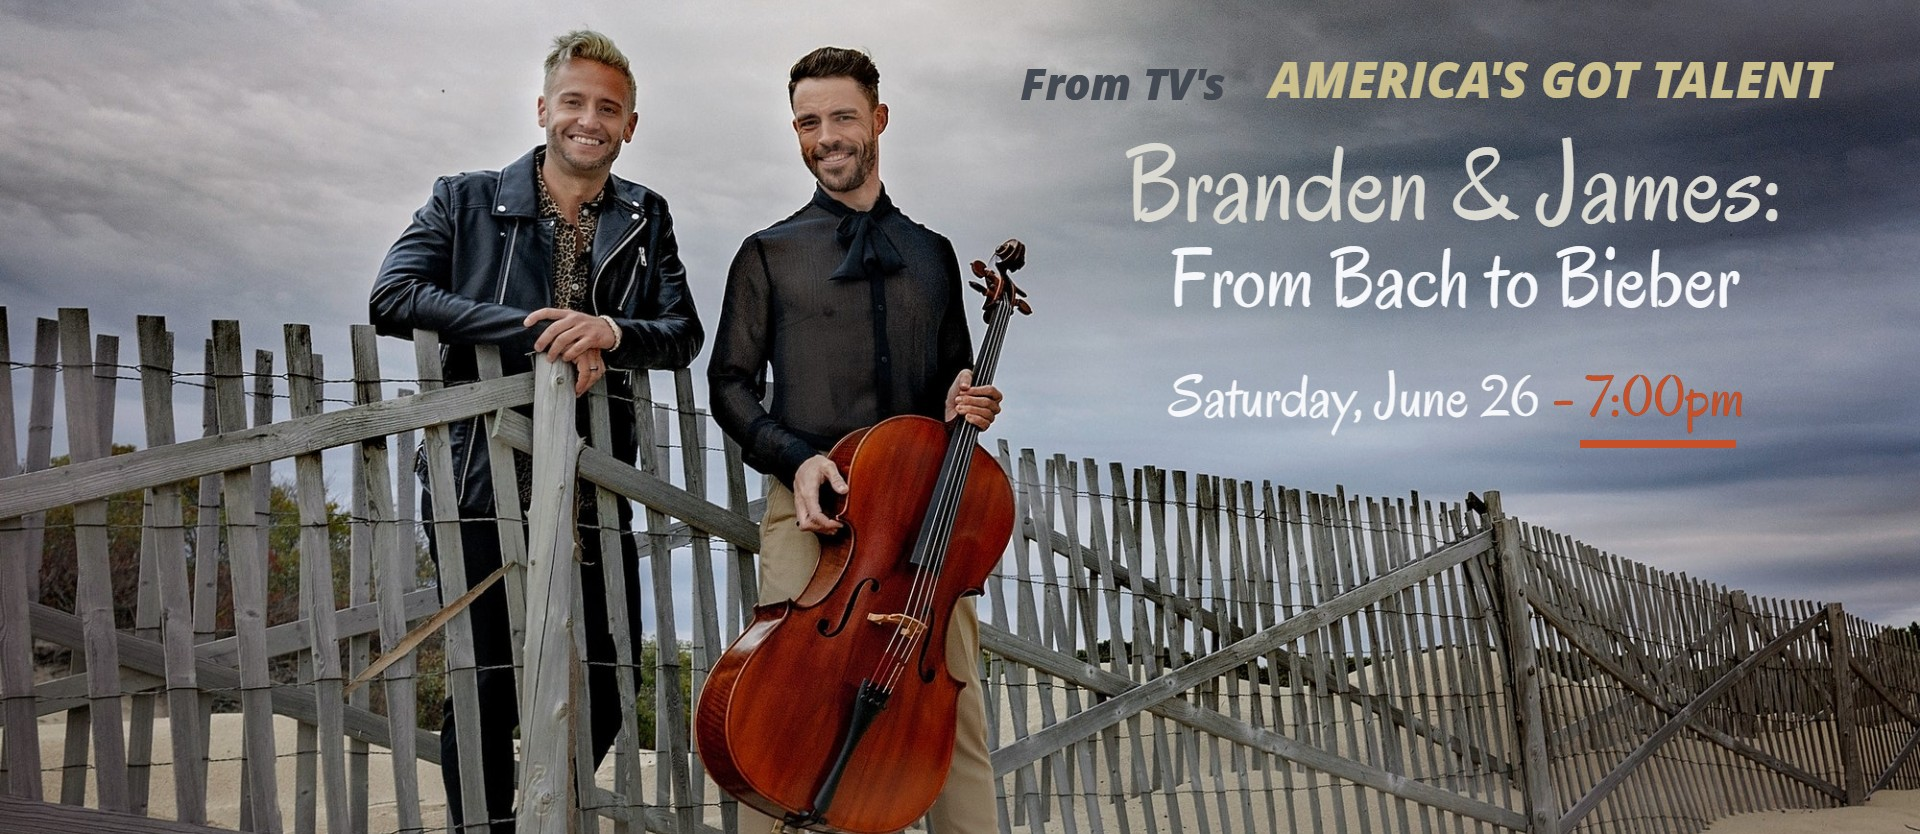 Branden & James - From Bach to Bieber (IN PERSON) - 7:00pm